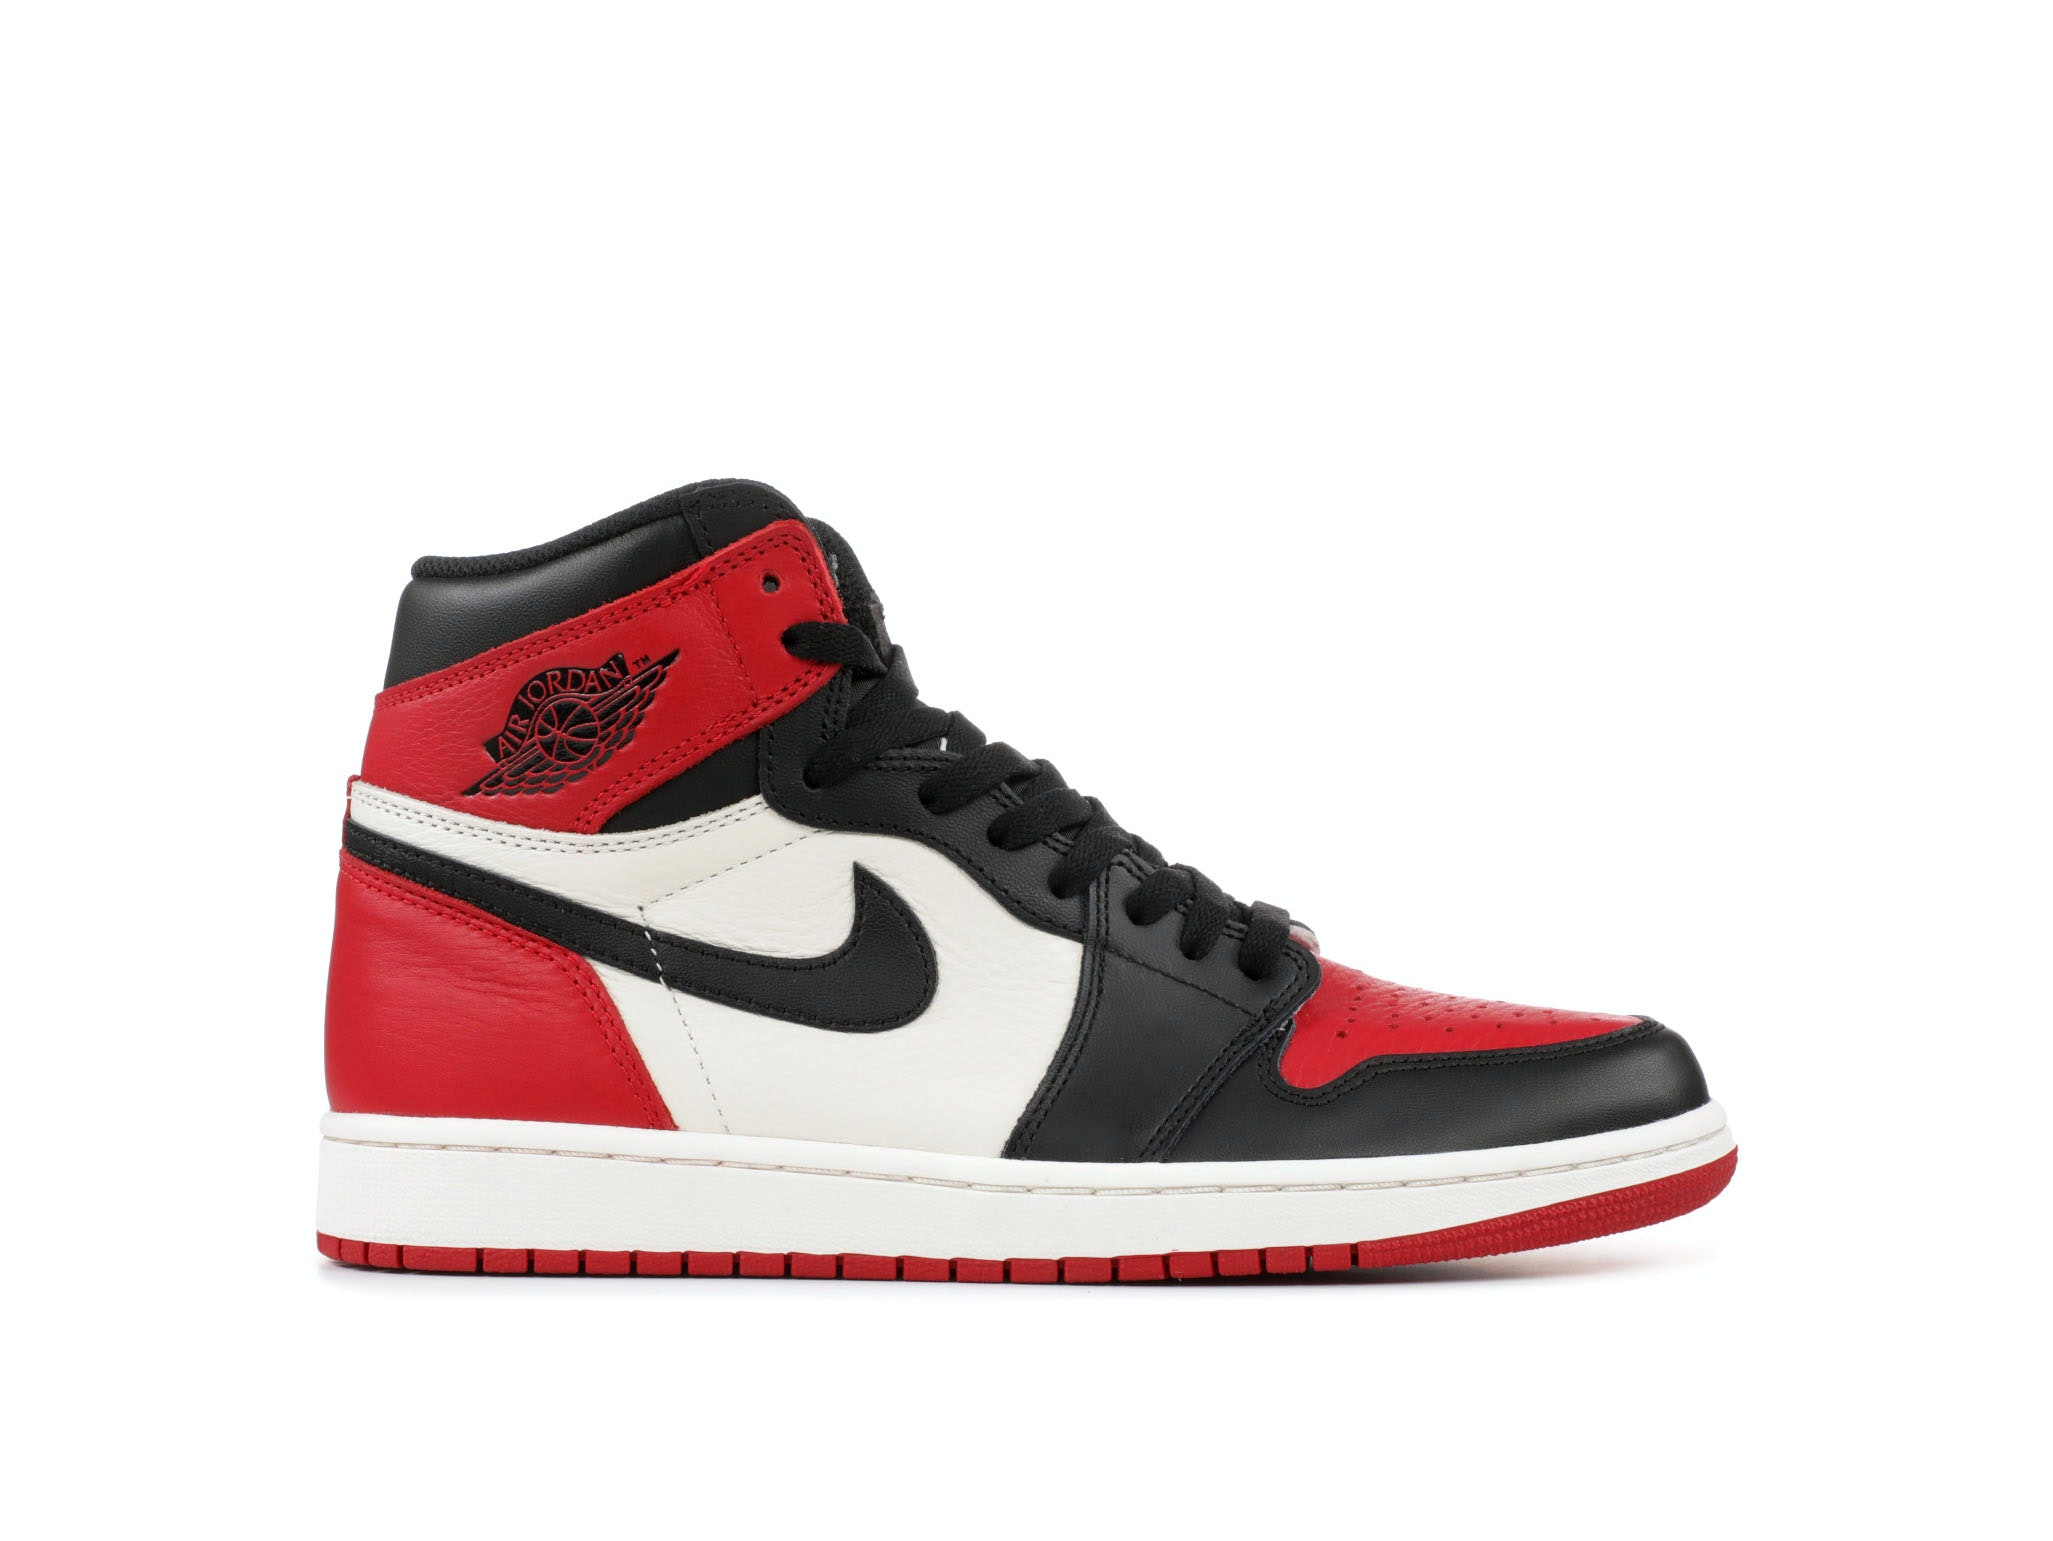 dec543ca4b89 Shop Air Jordan 1 Retro High OG Bred Toe Online